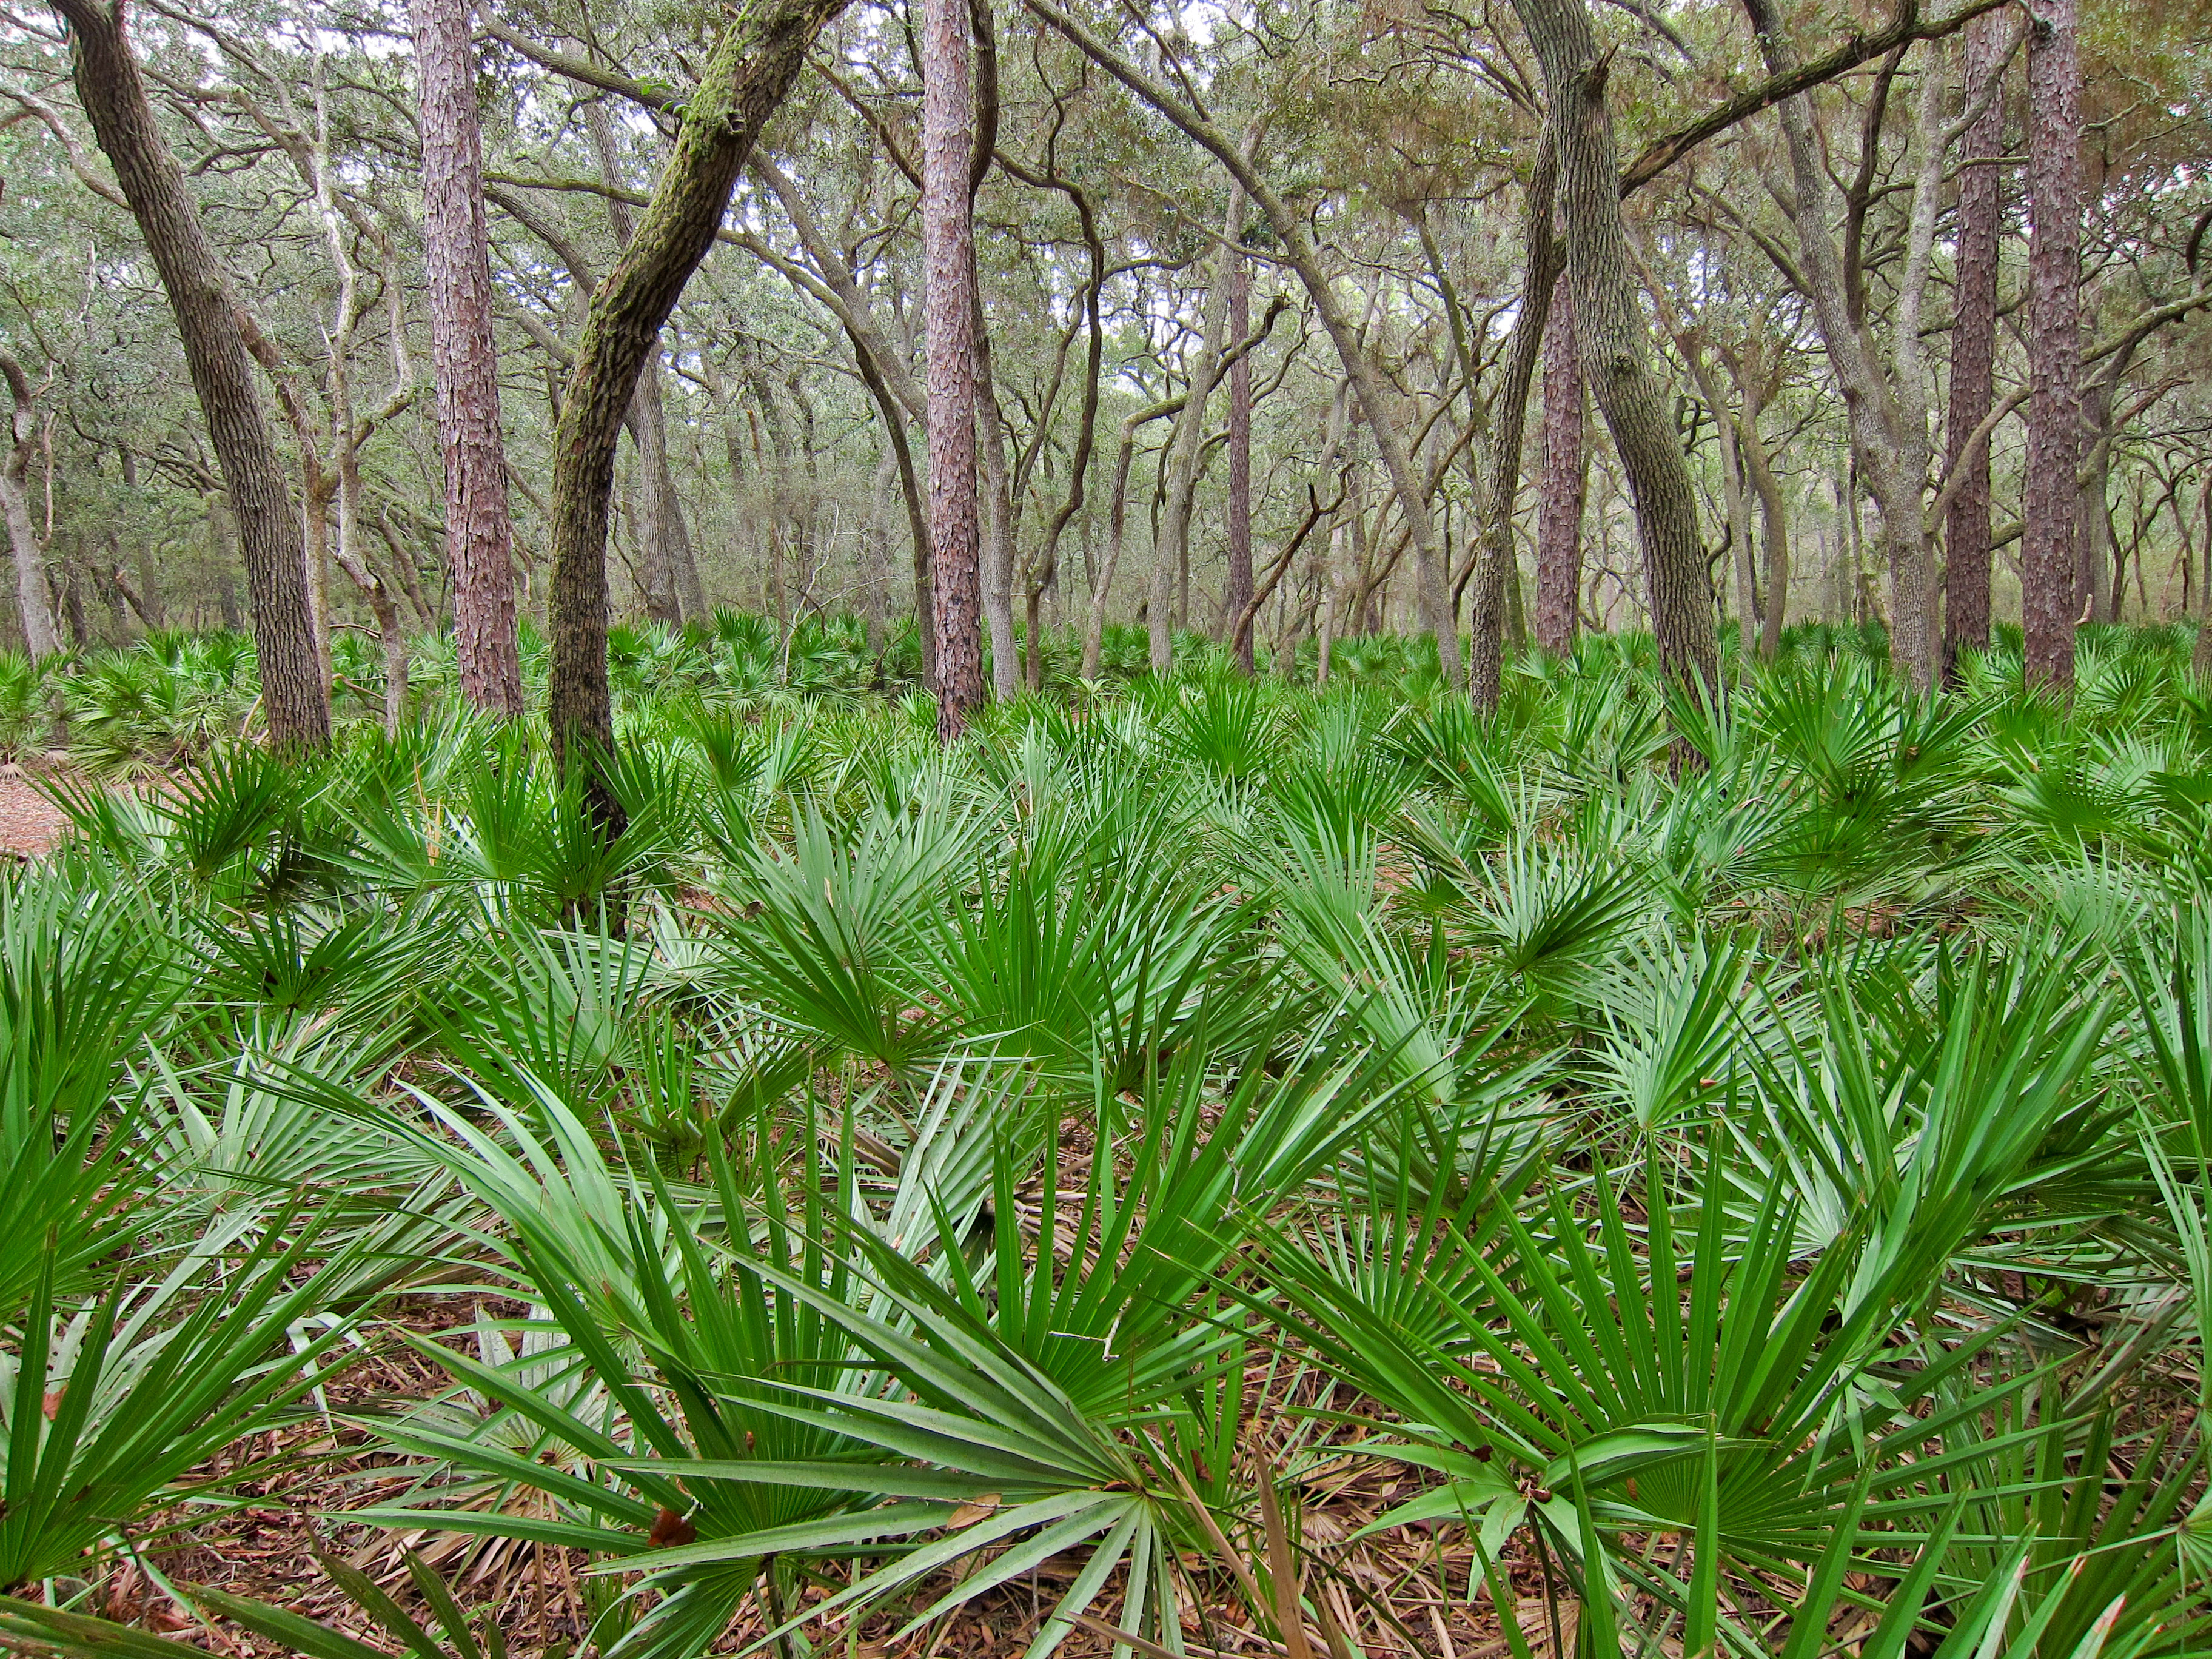 permit now required to pick berries from saw palmetto plants in florida